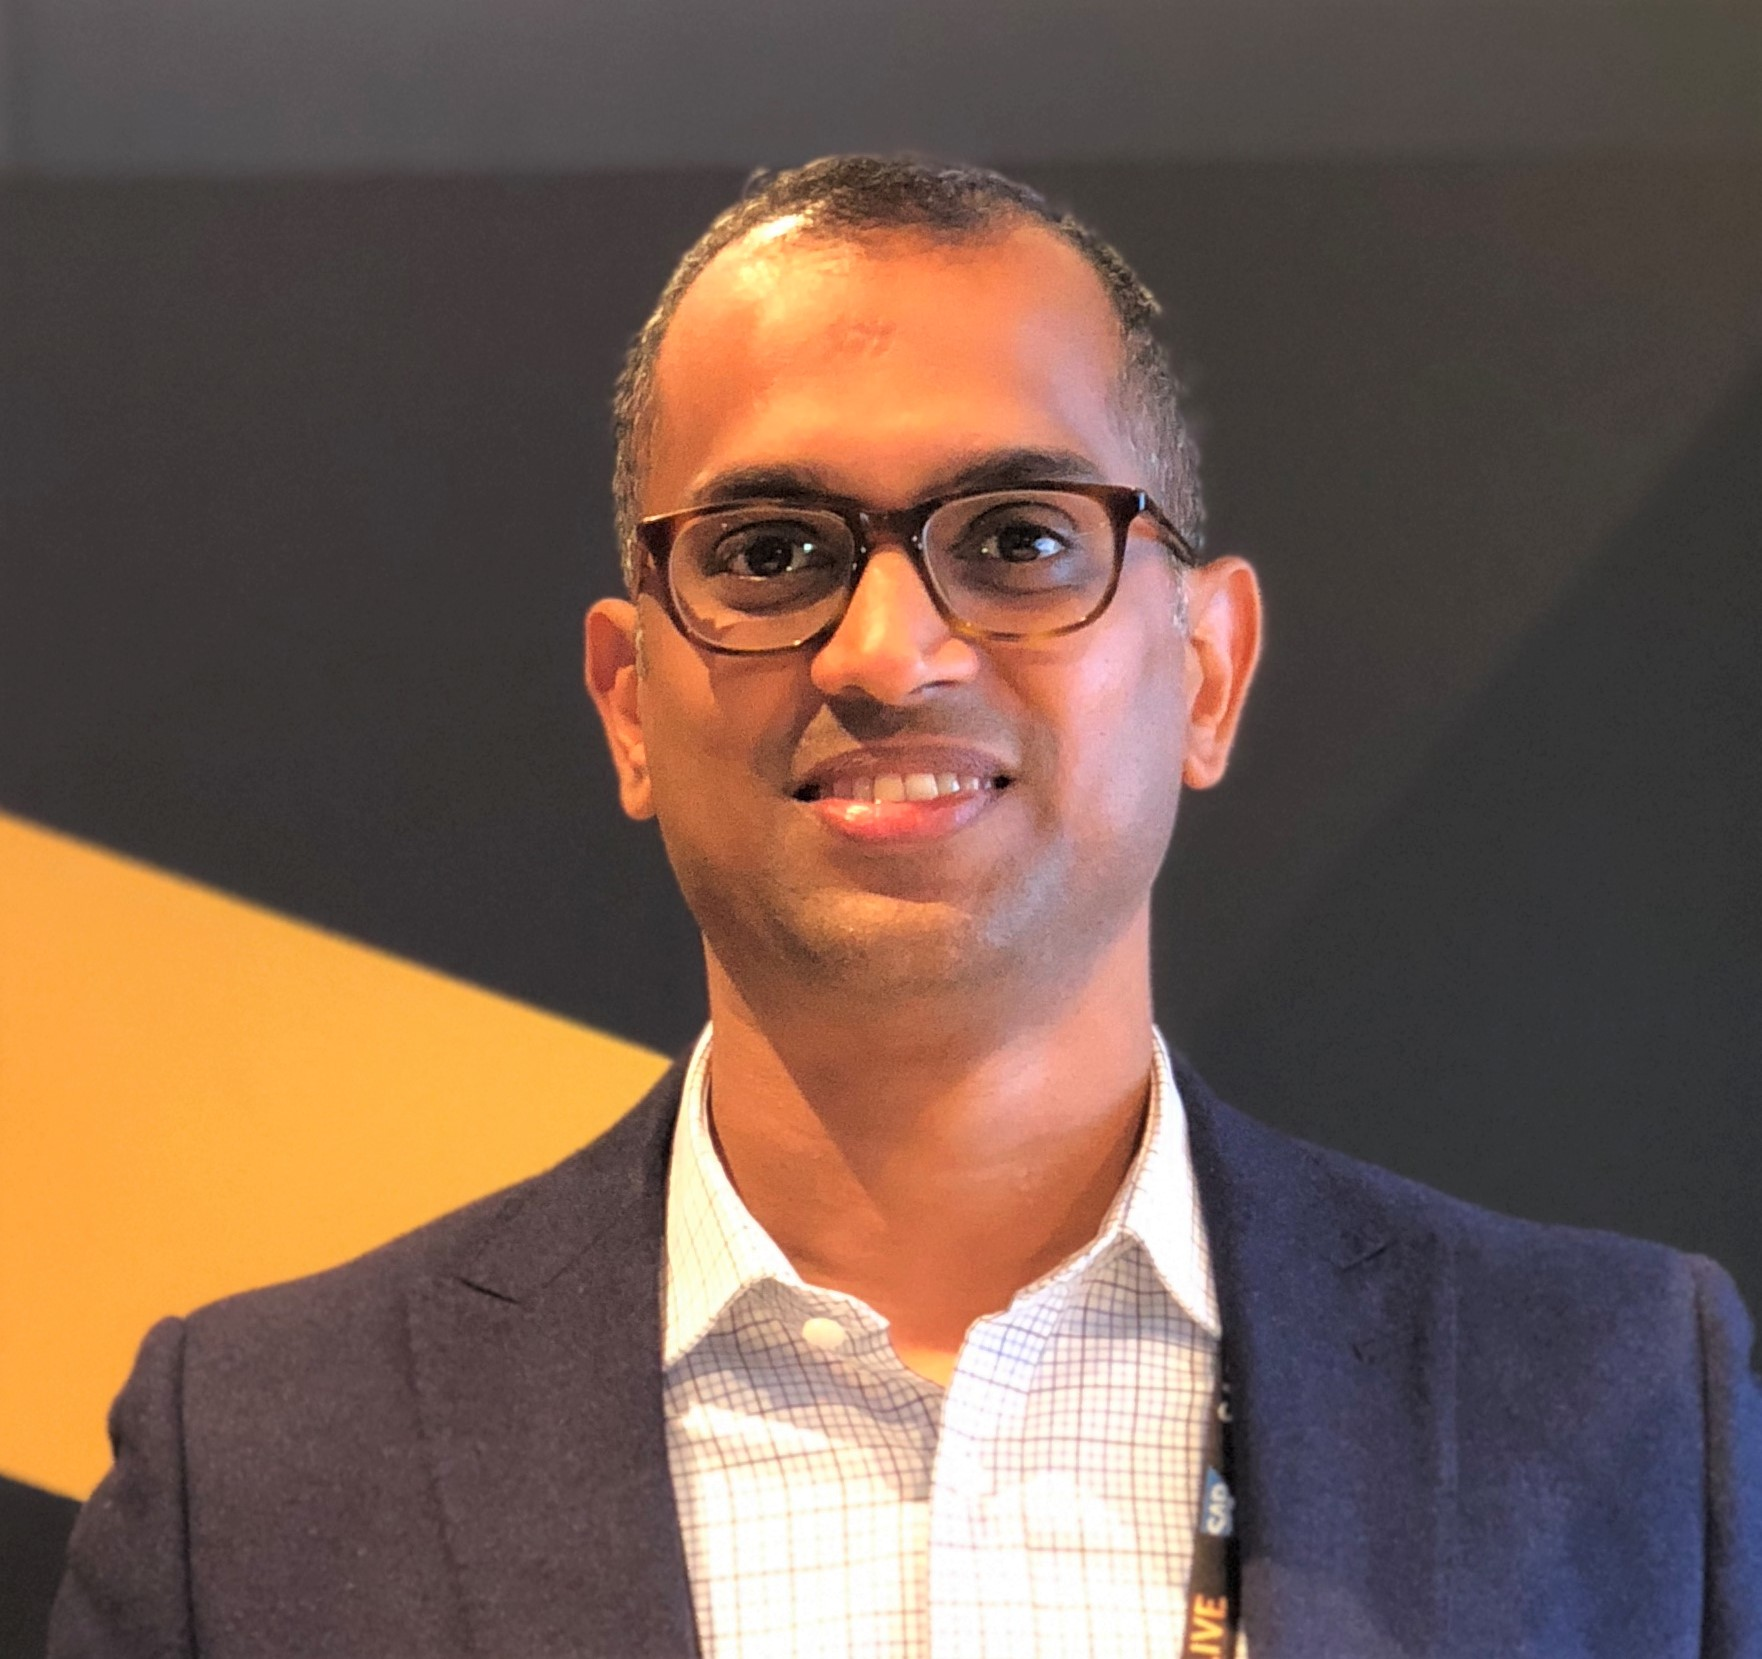 Sai Tulluri, Director – Technology, Accenture